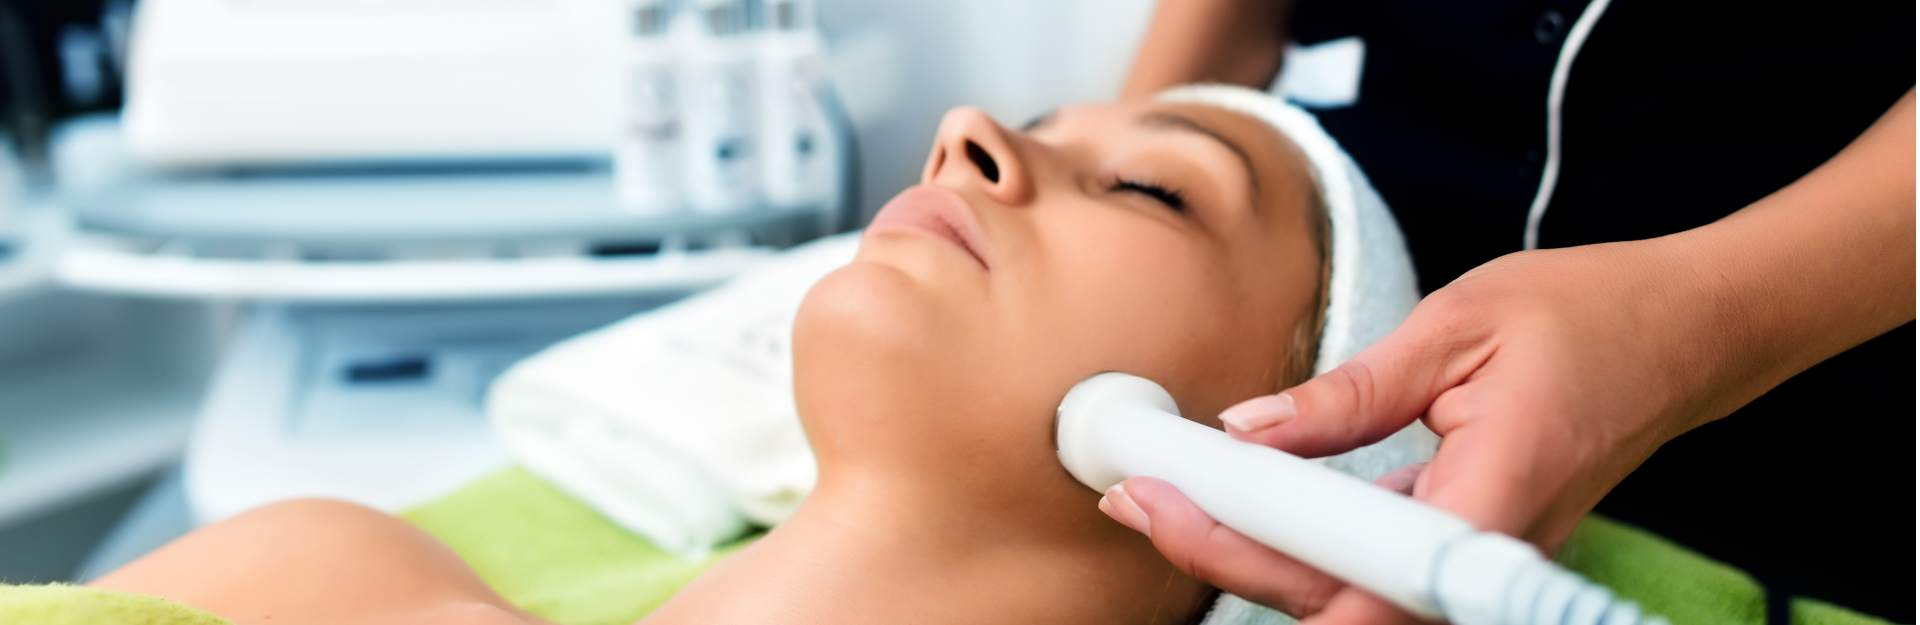 A Laser Treatment for Acne Scars